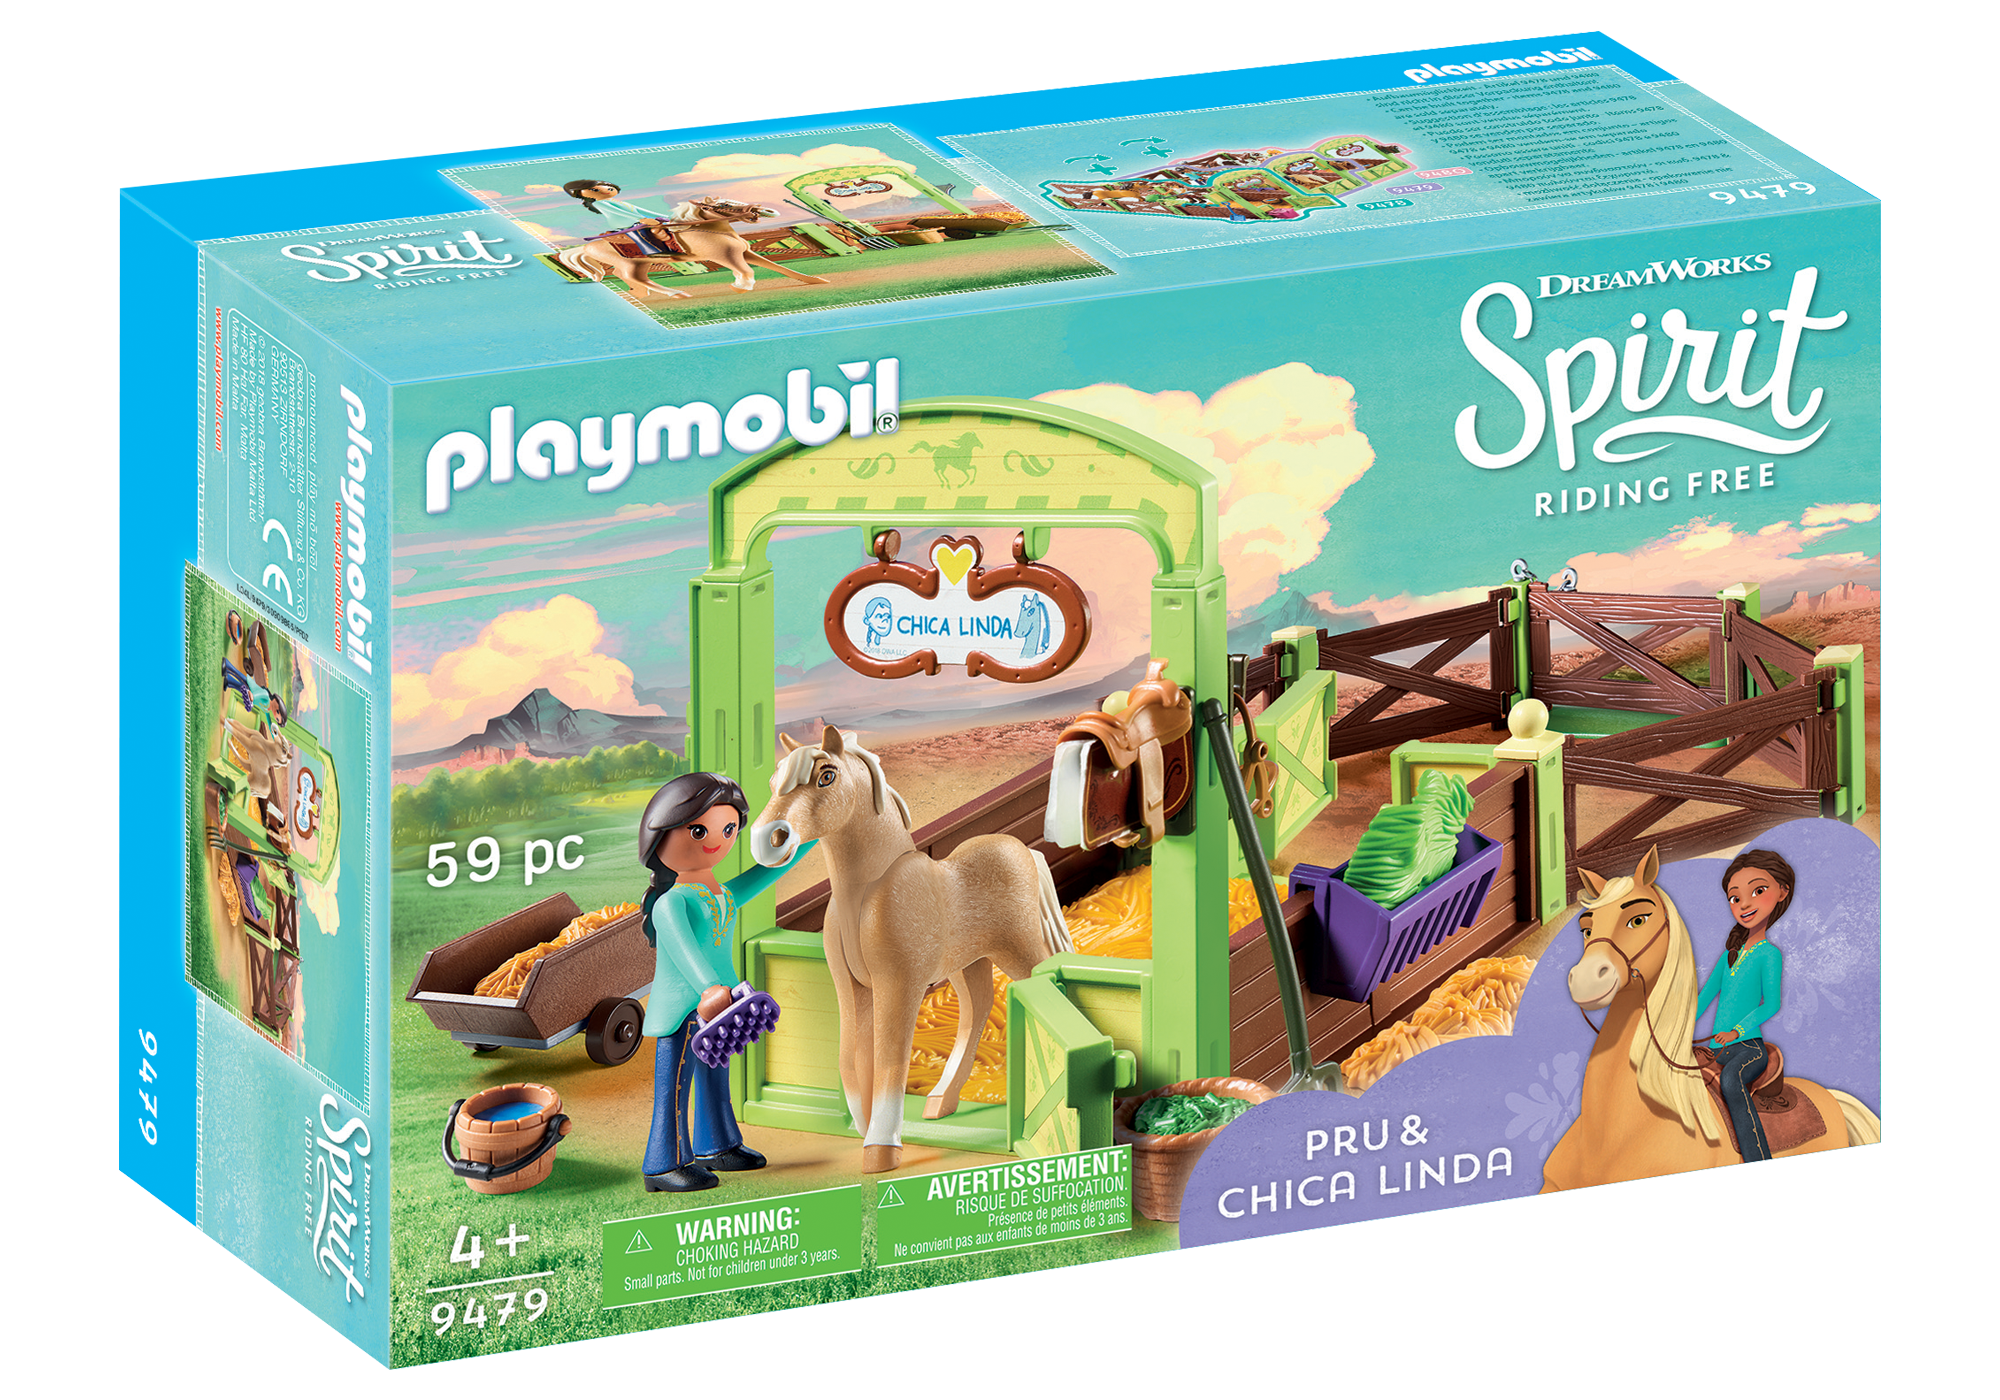 http://media.playmobil.com/i/playmobil/9479_product_box_front/Pru & Chica Linda with Horse Stall